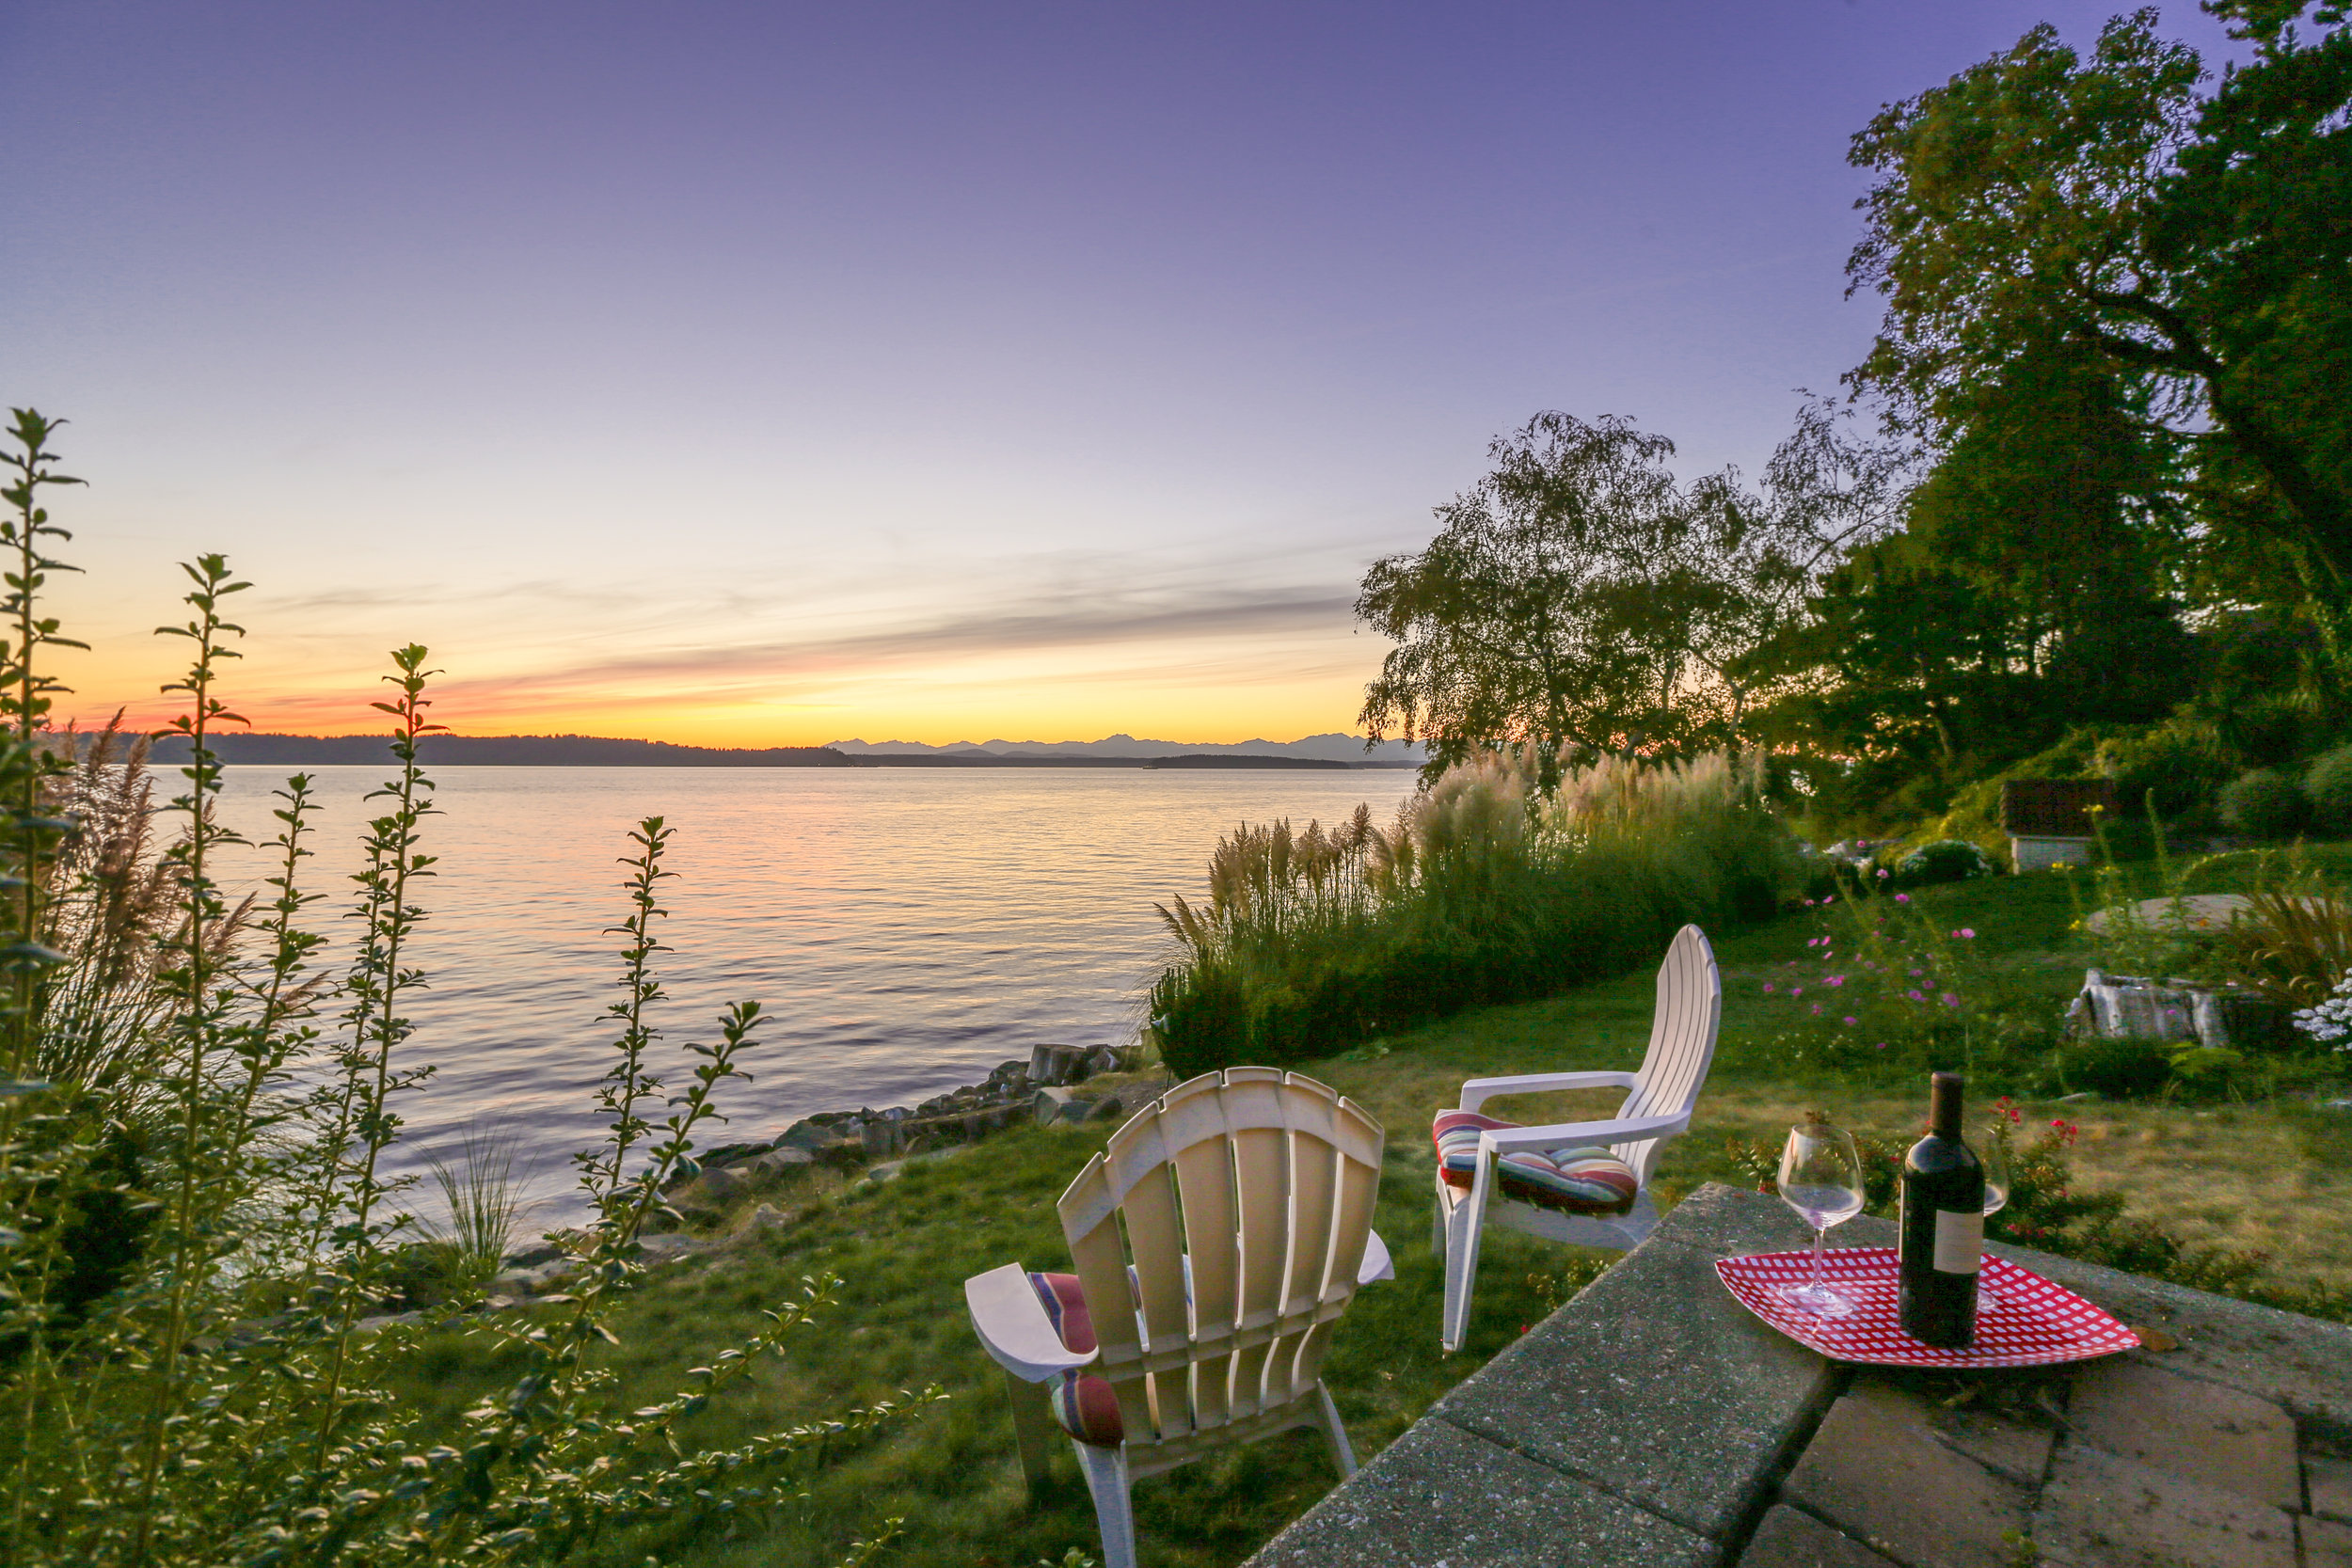 #13 Meditate from Your Adirondack Chairs with a Glass of Your Favorite Vino - Sound View Facing North.jpg